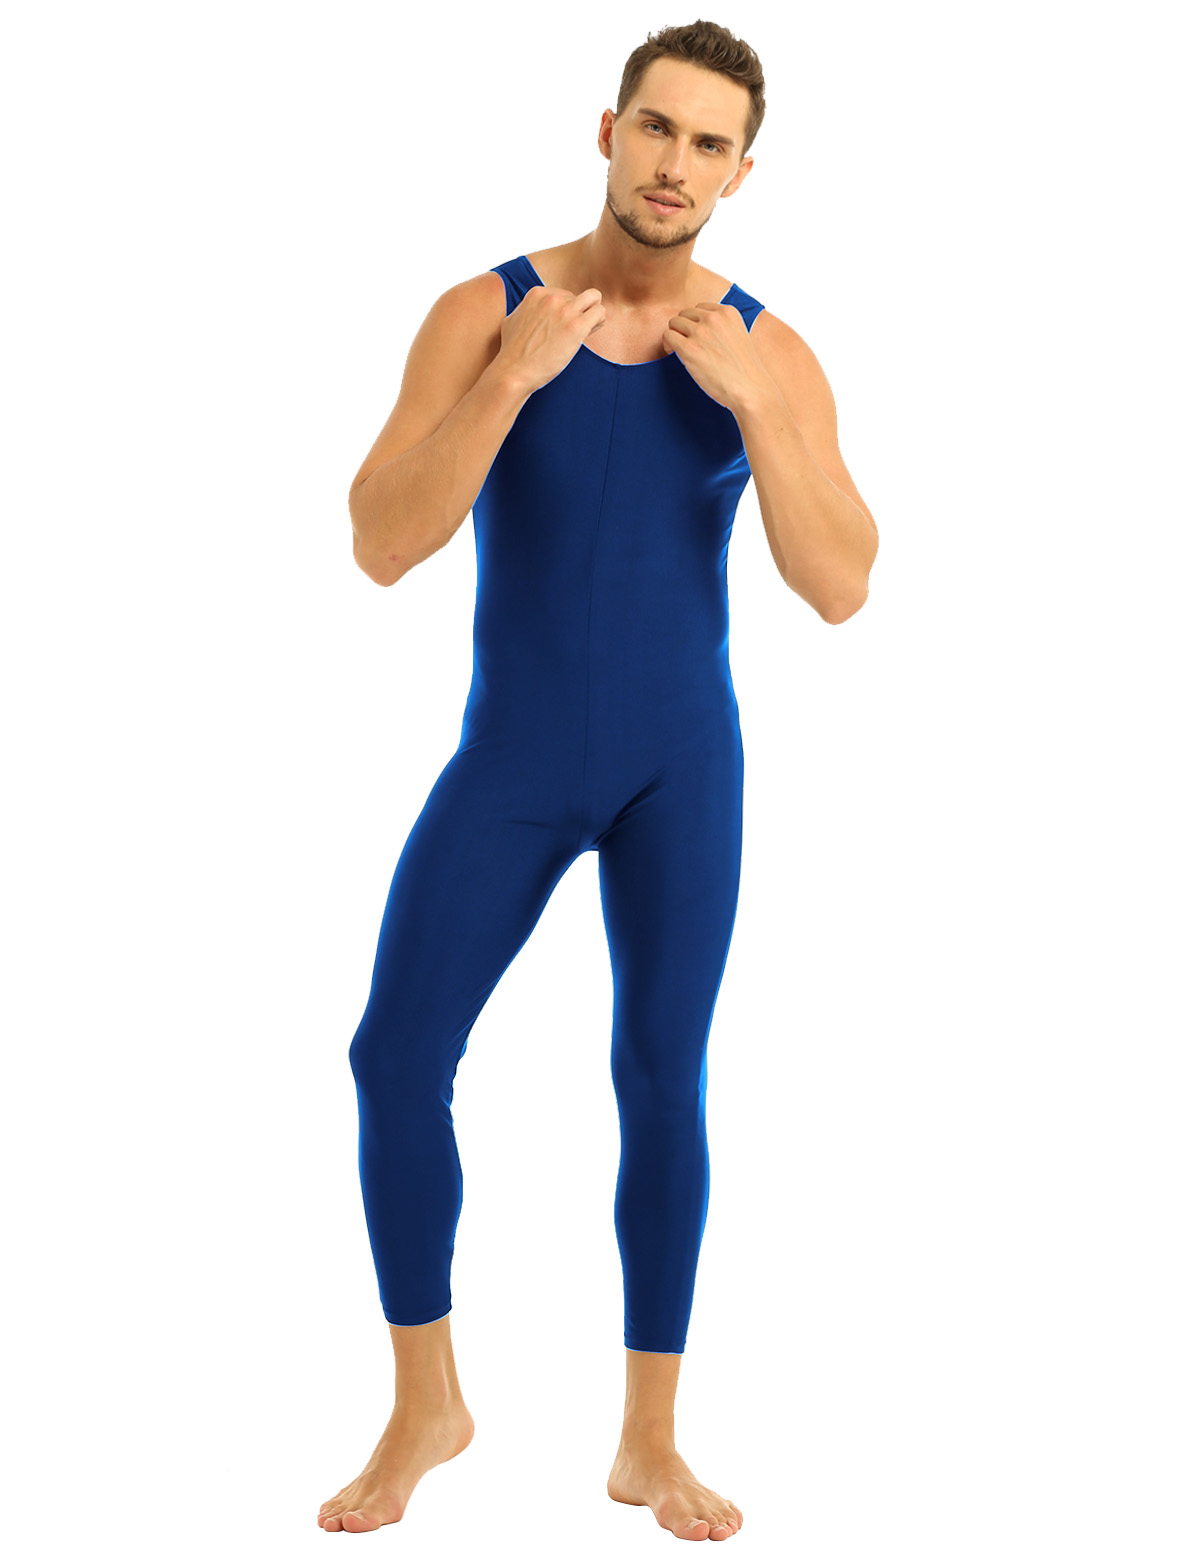 Men Sleeveless Leotard Bodysuit Lycra Tights Leggings for Ballet Dance Vest Teddy Sports Unitard Catsuit Male Dancewear Jumpsuit 24